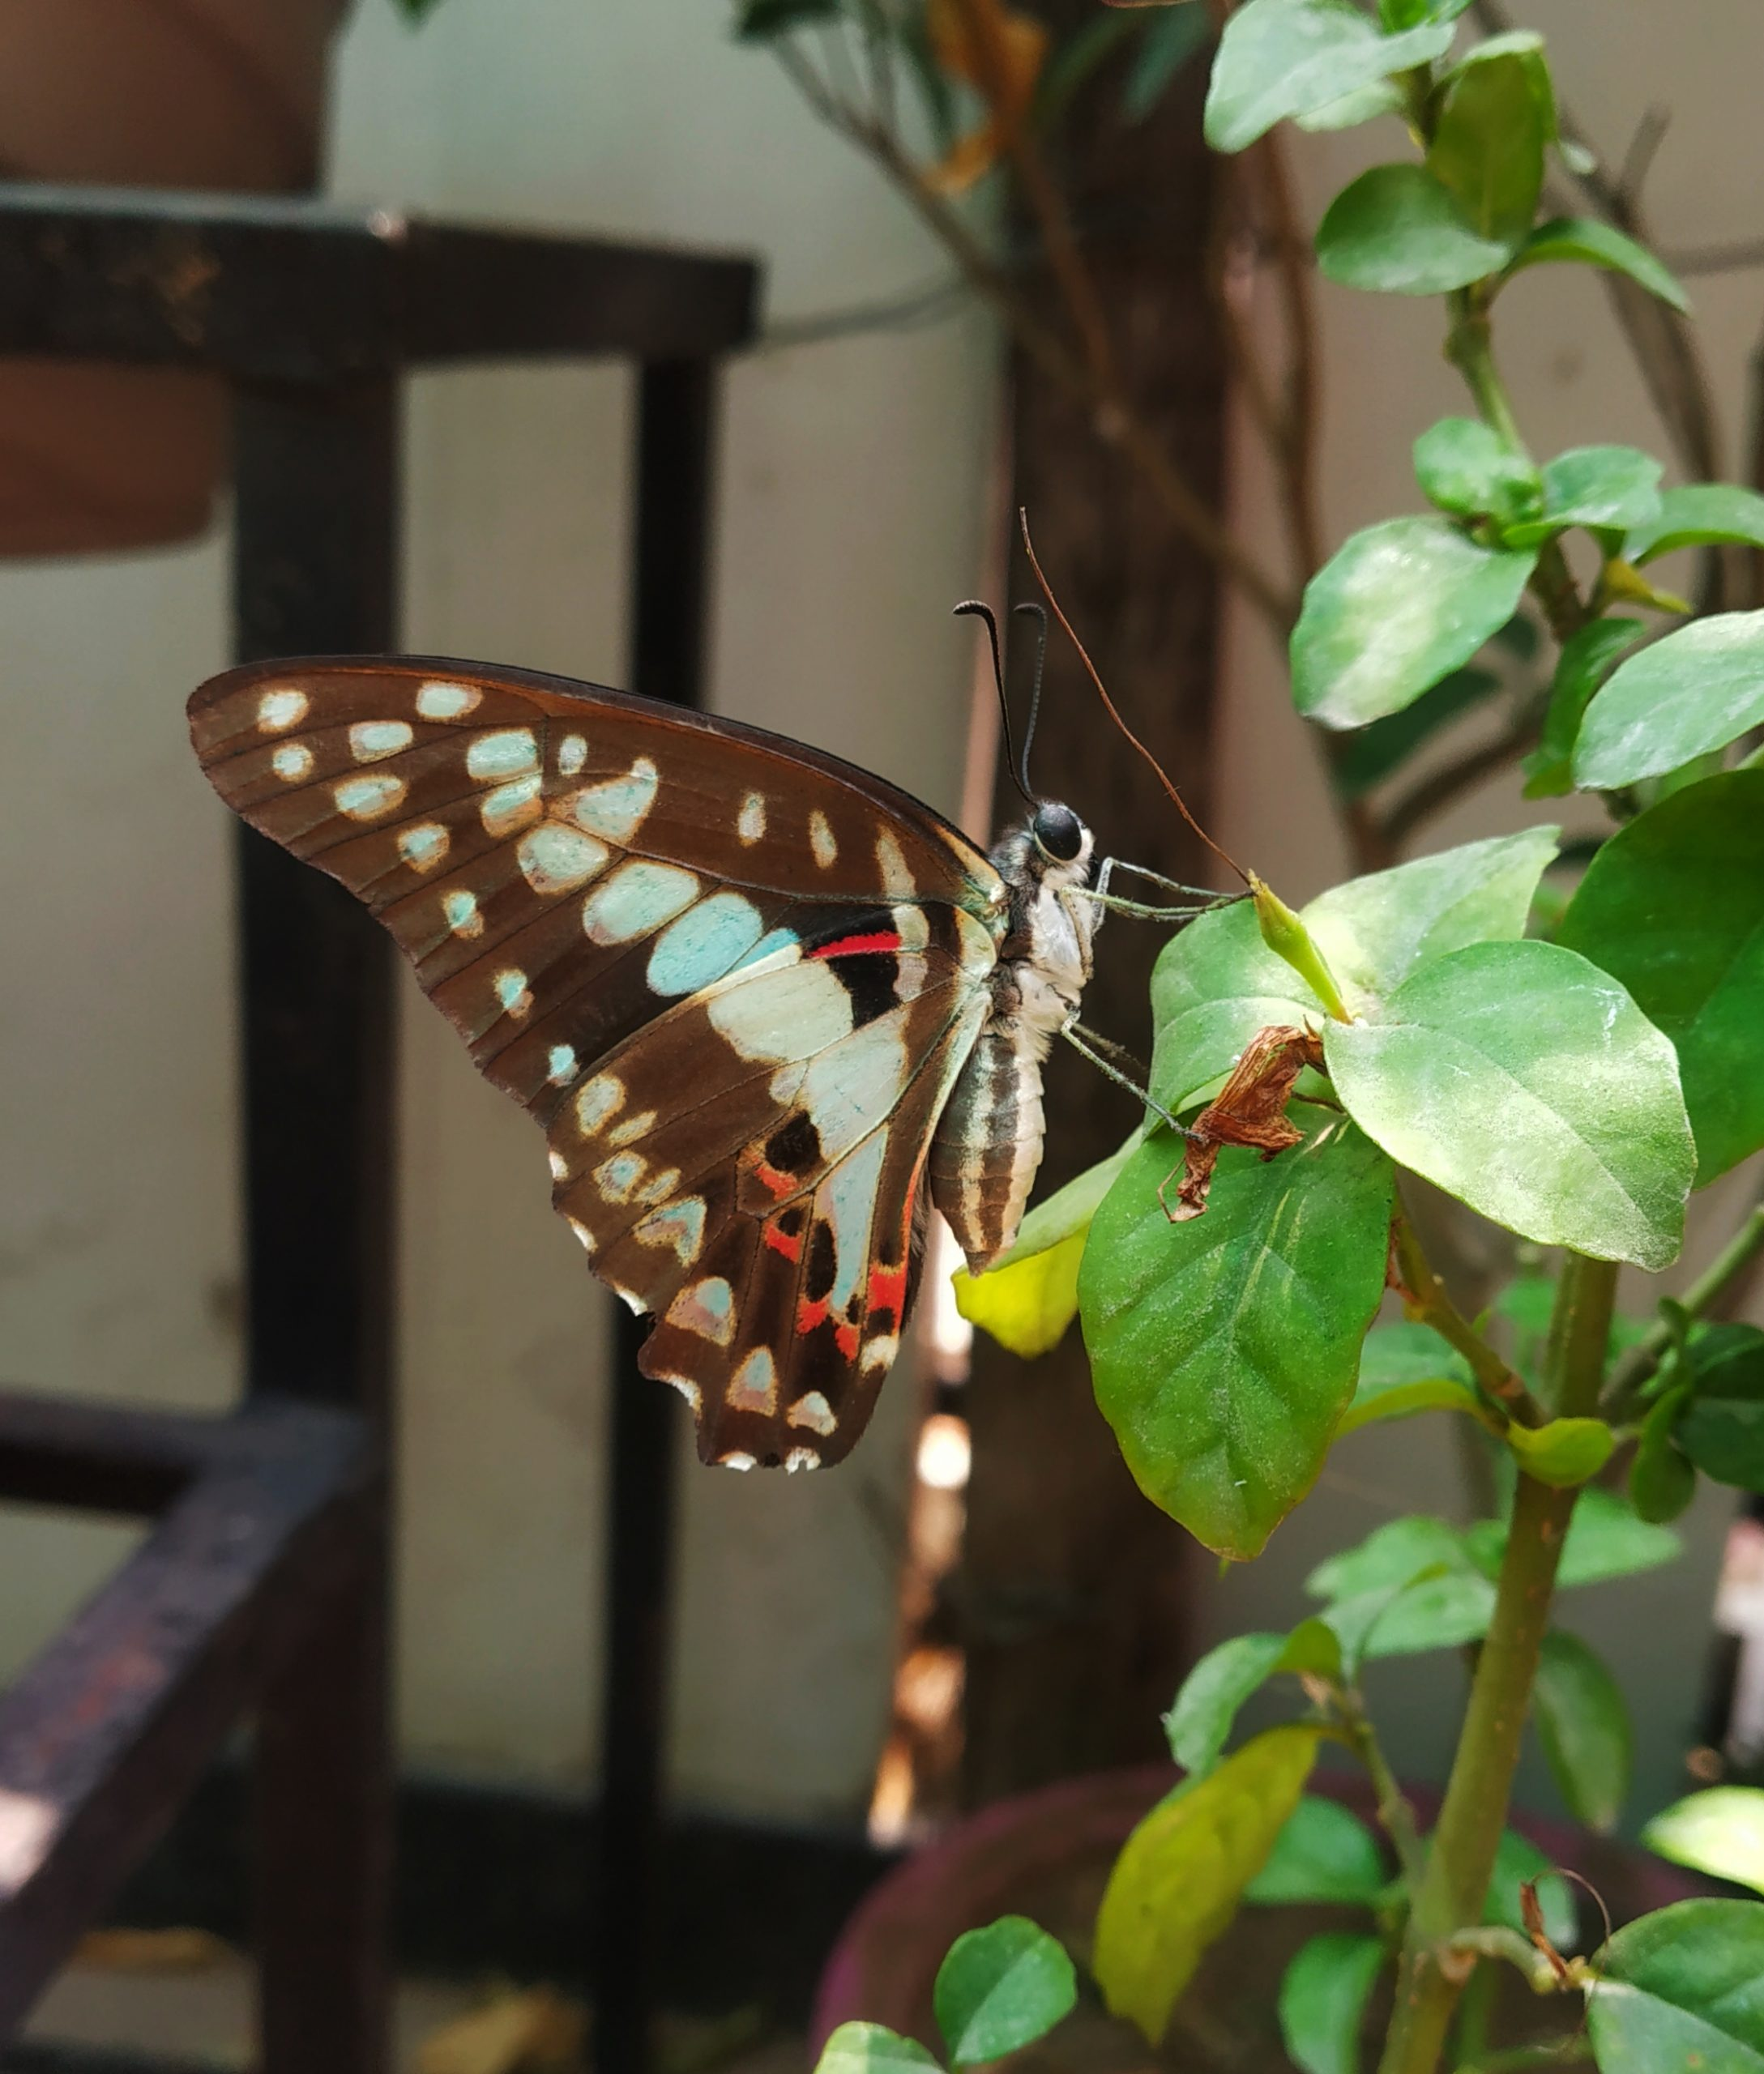 Butterfly on the plant leaf